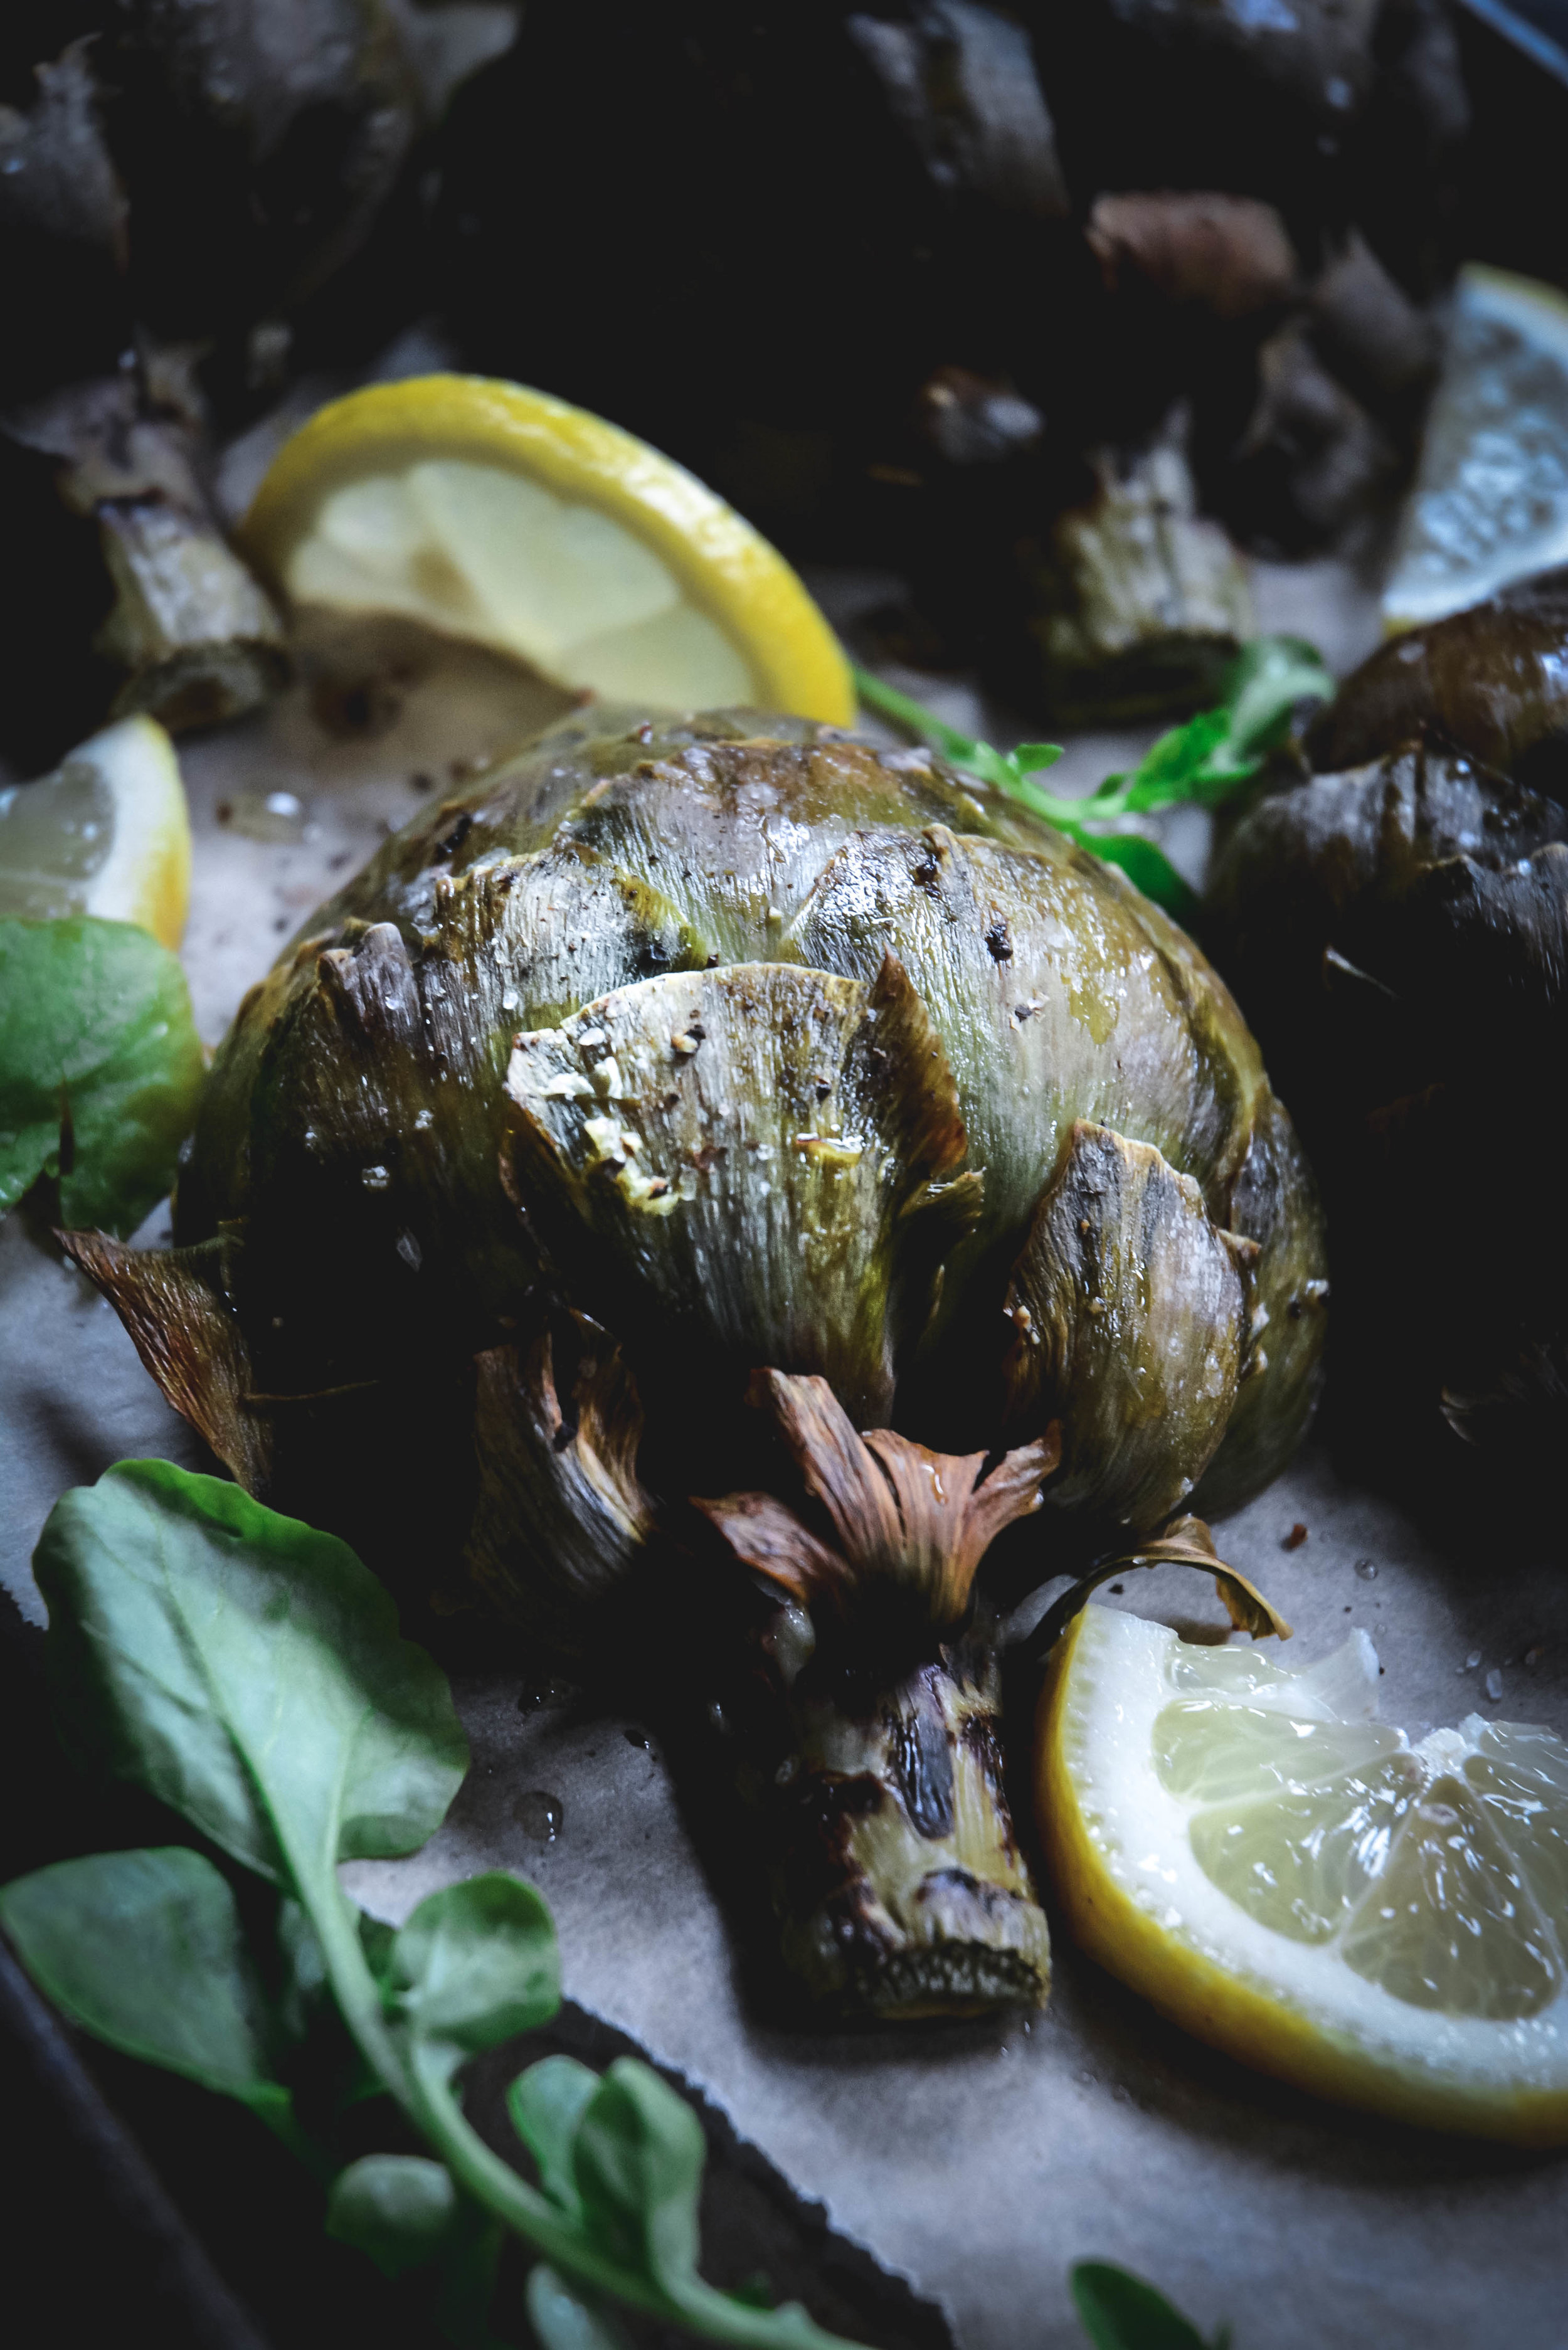 roasted artichokes with lemon slices